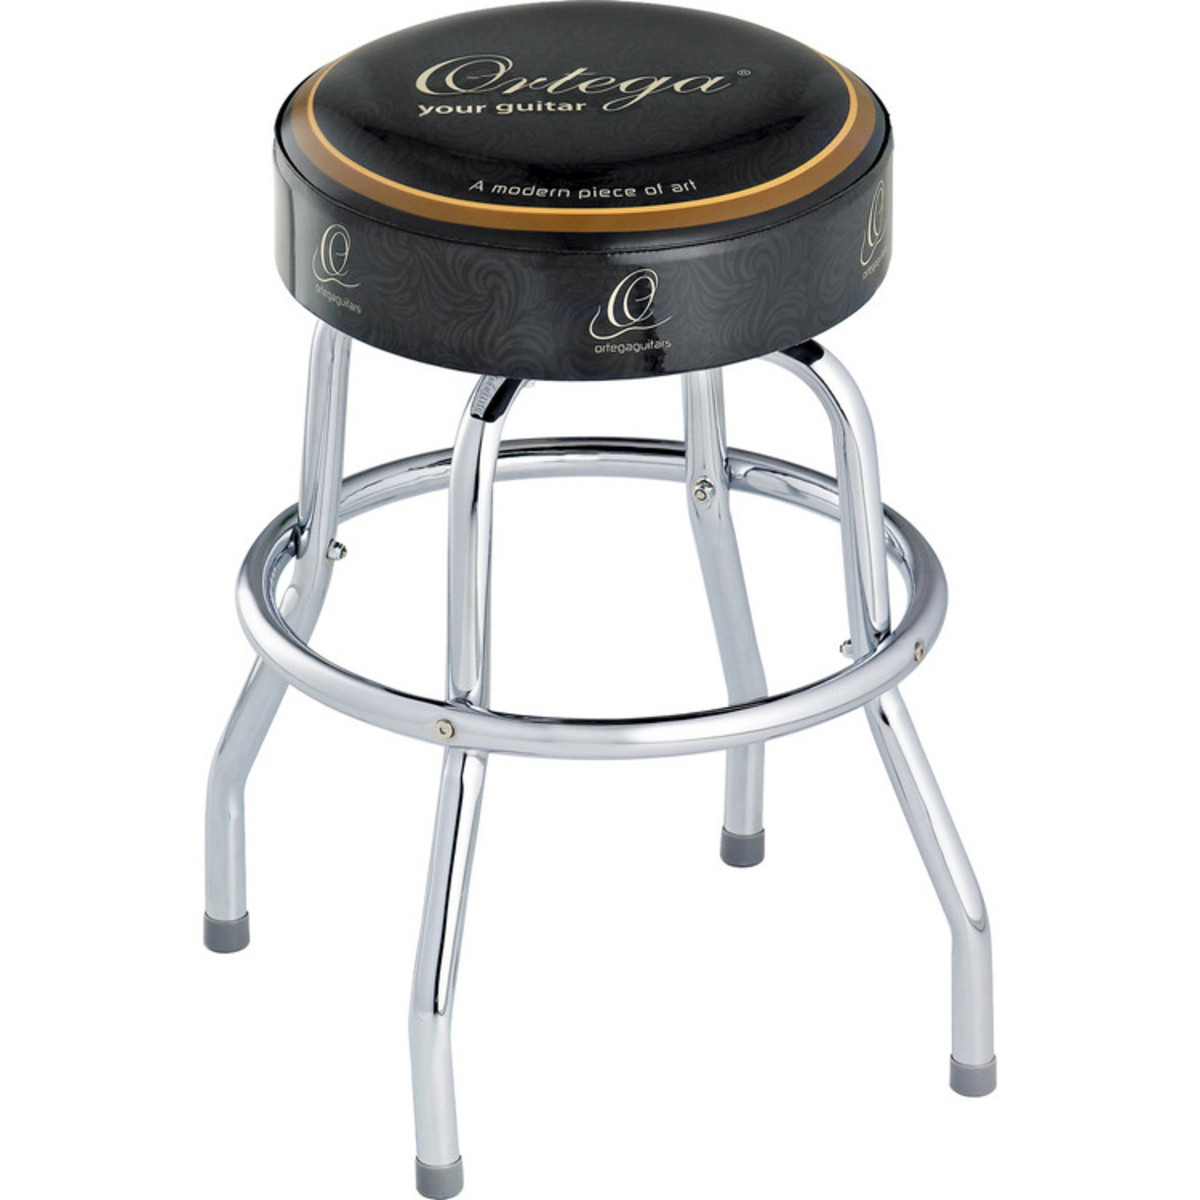 Disc Ortega Obs24 Bar Stool 24 Quot At Gear4music